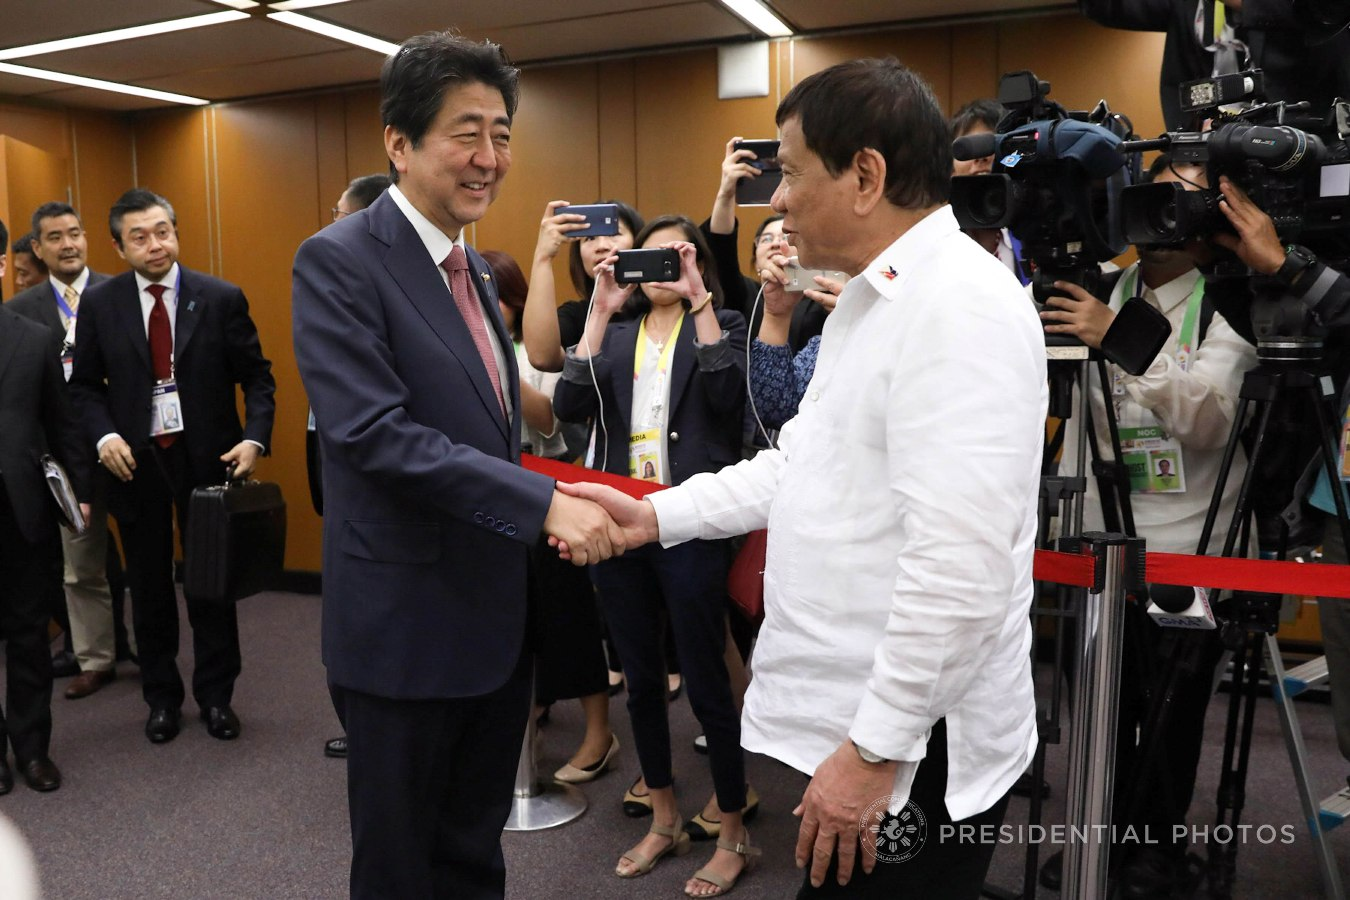 FILE: President Rodrigo Roa Duterte gives a warm welcome to Japan Prime Minister Shinzo Abe prior to the start of their bilateral meeting at the Philippine International Convention Center in Pasay City on November 13, 2017. ROBINSON NIÑAL JR./PRESIDENTIAL PHOTO